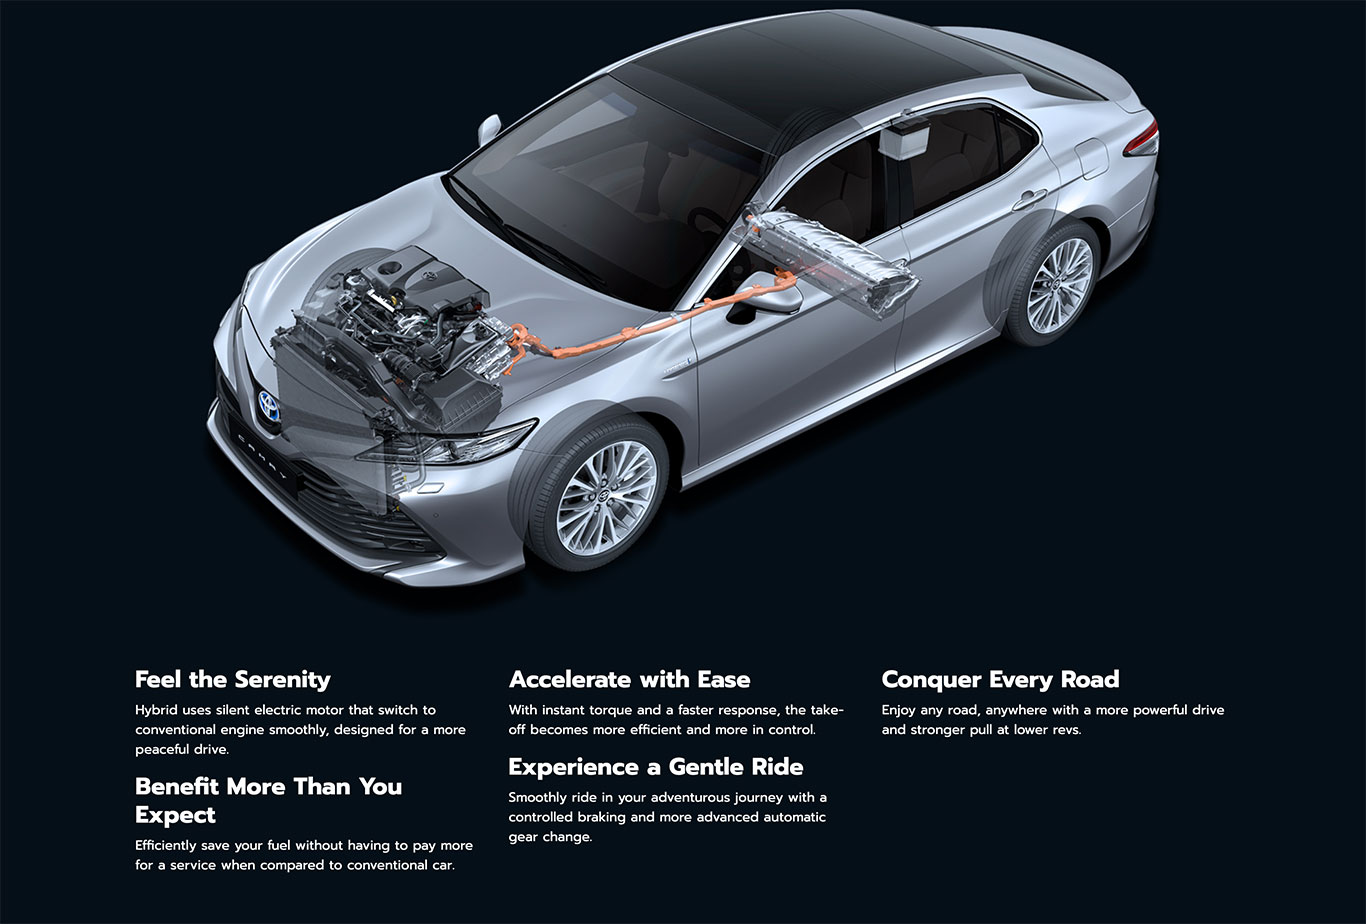 toyota-camry-hybrid-performance-features-1